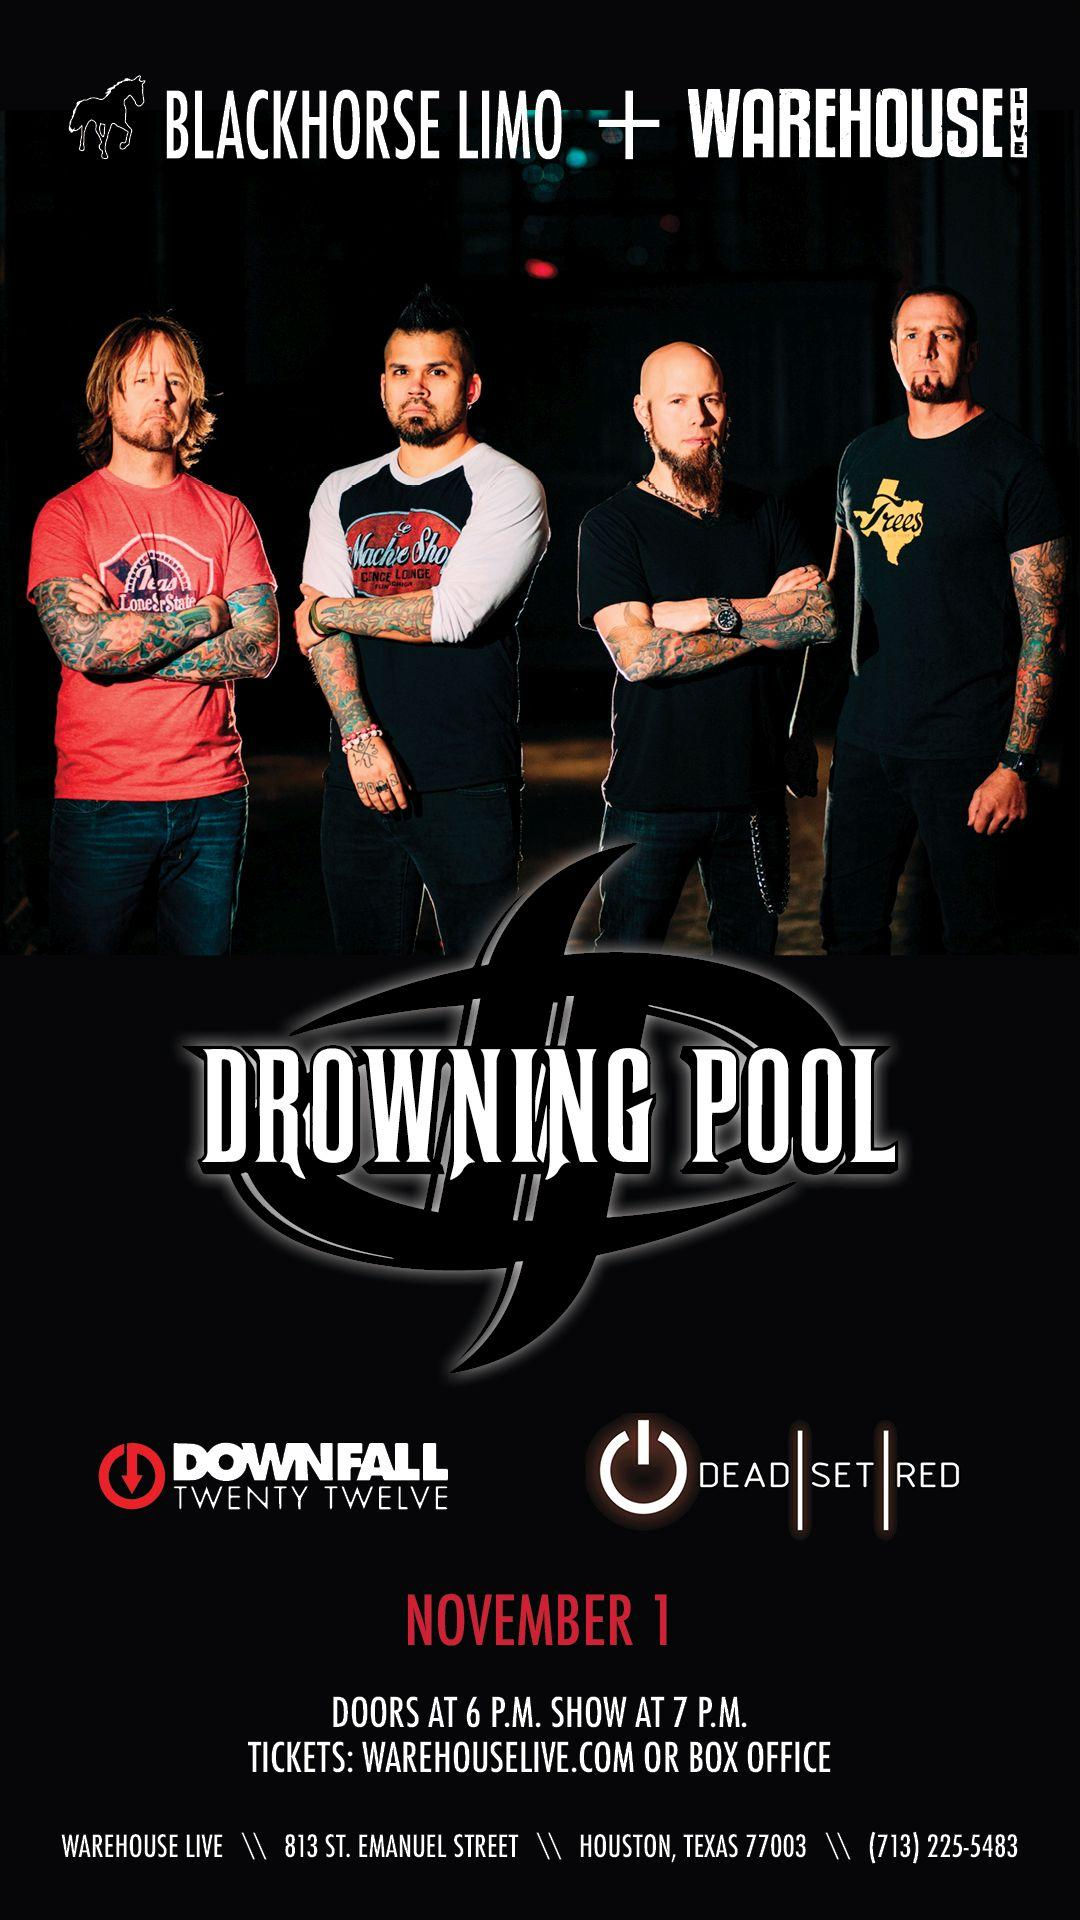 DROWNING POOL, DOWNFALL 2012, DEAD SET RED